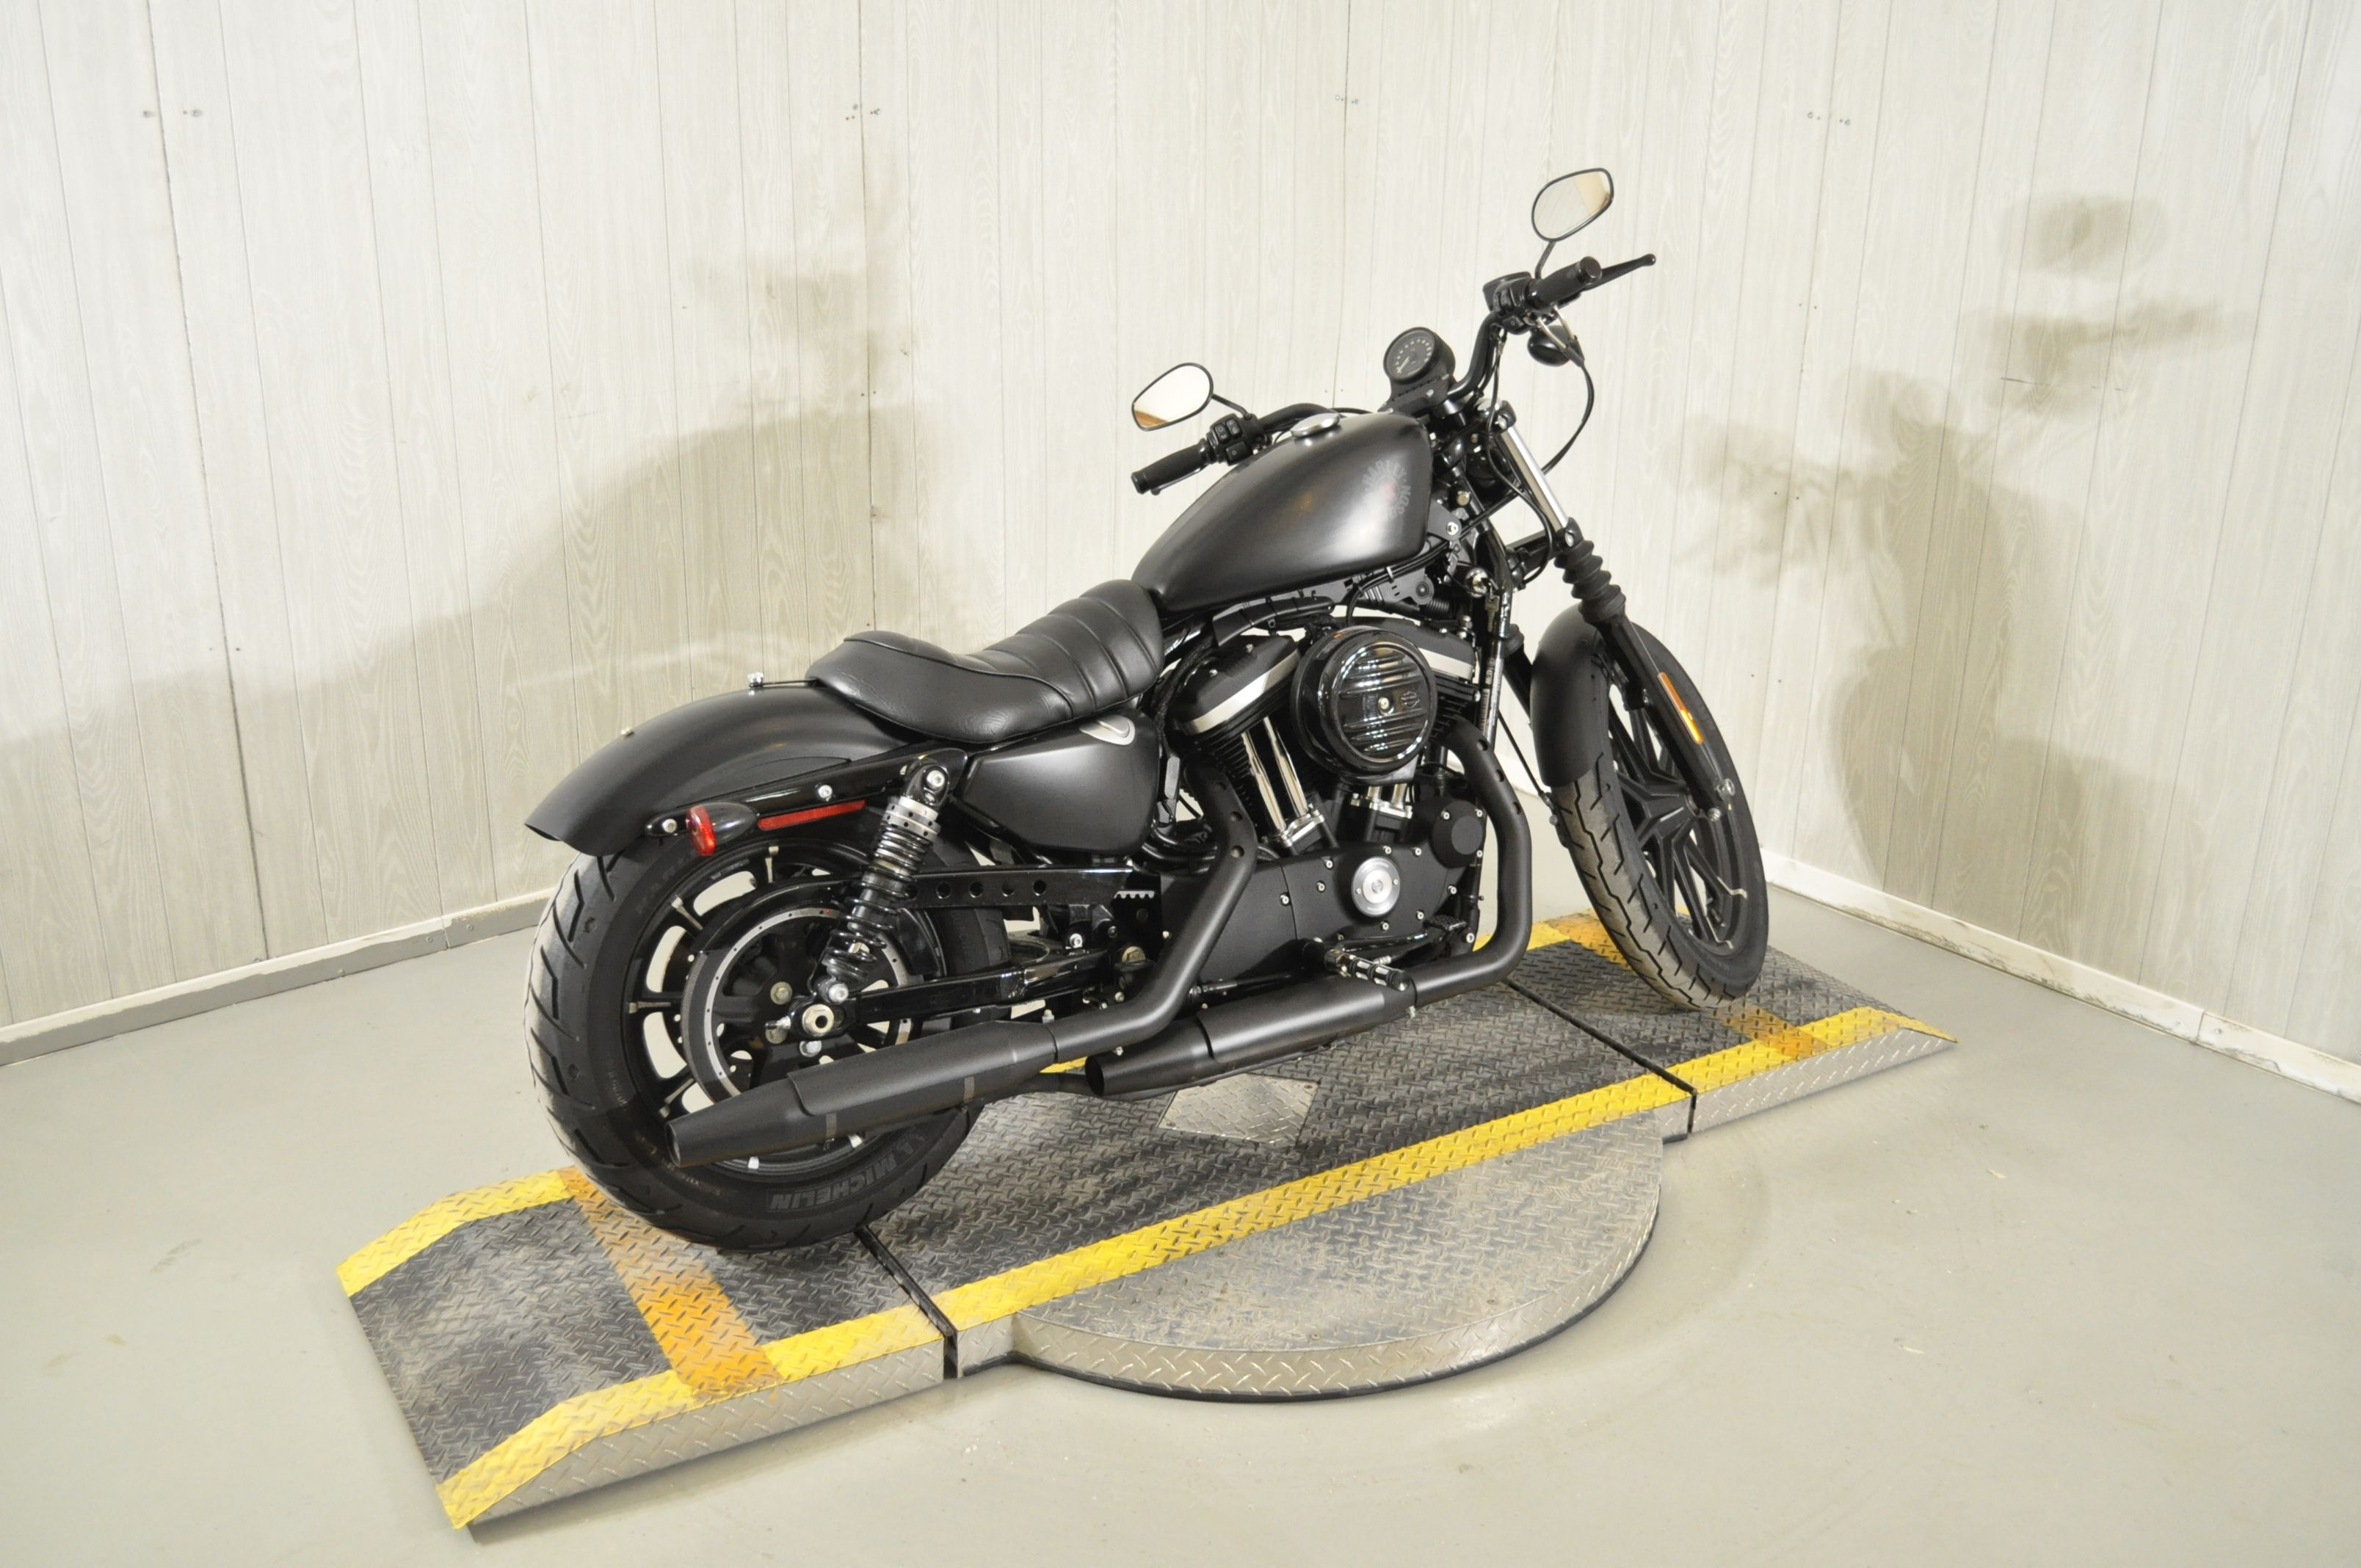 Pre-Owned 2019 Harley-Davidson Iron 883 XL883N